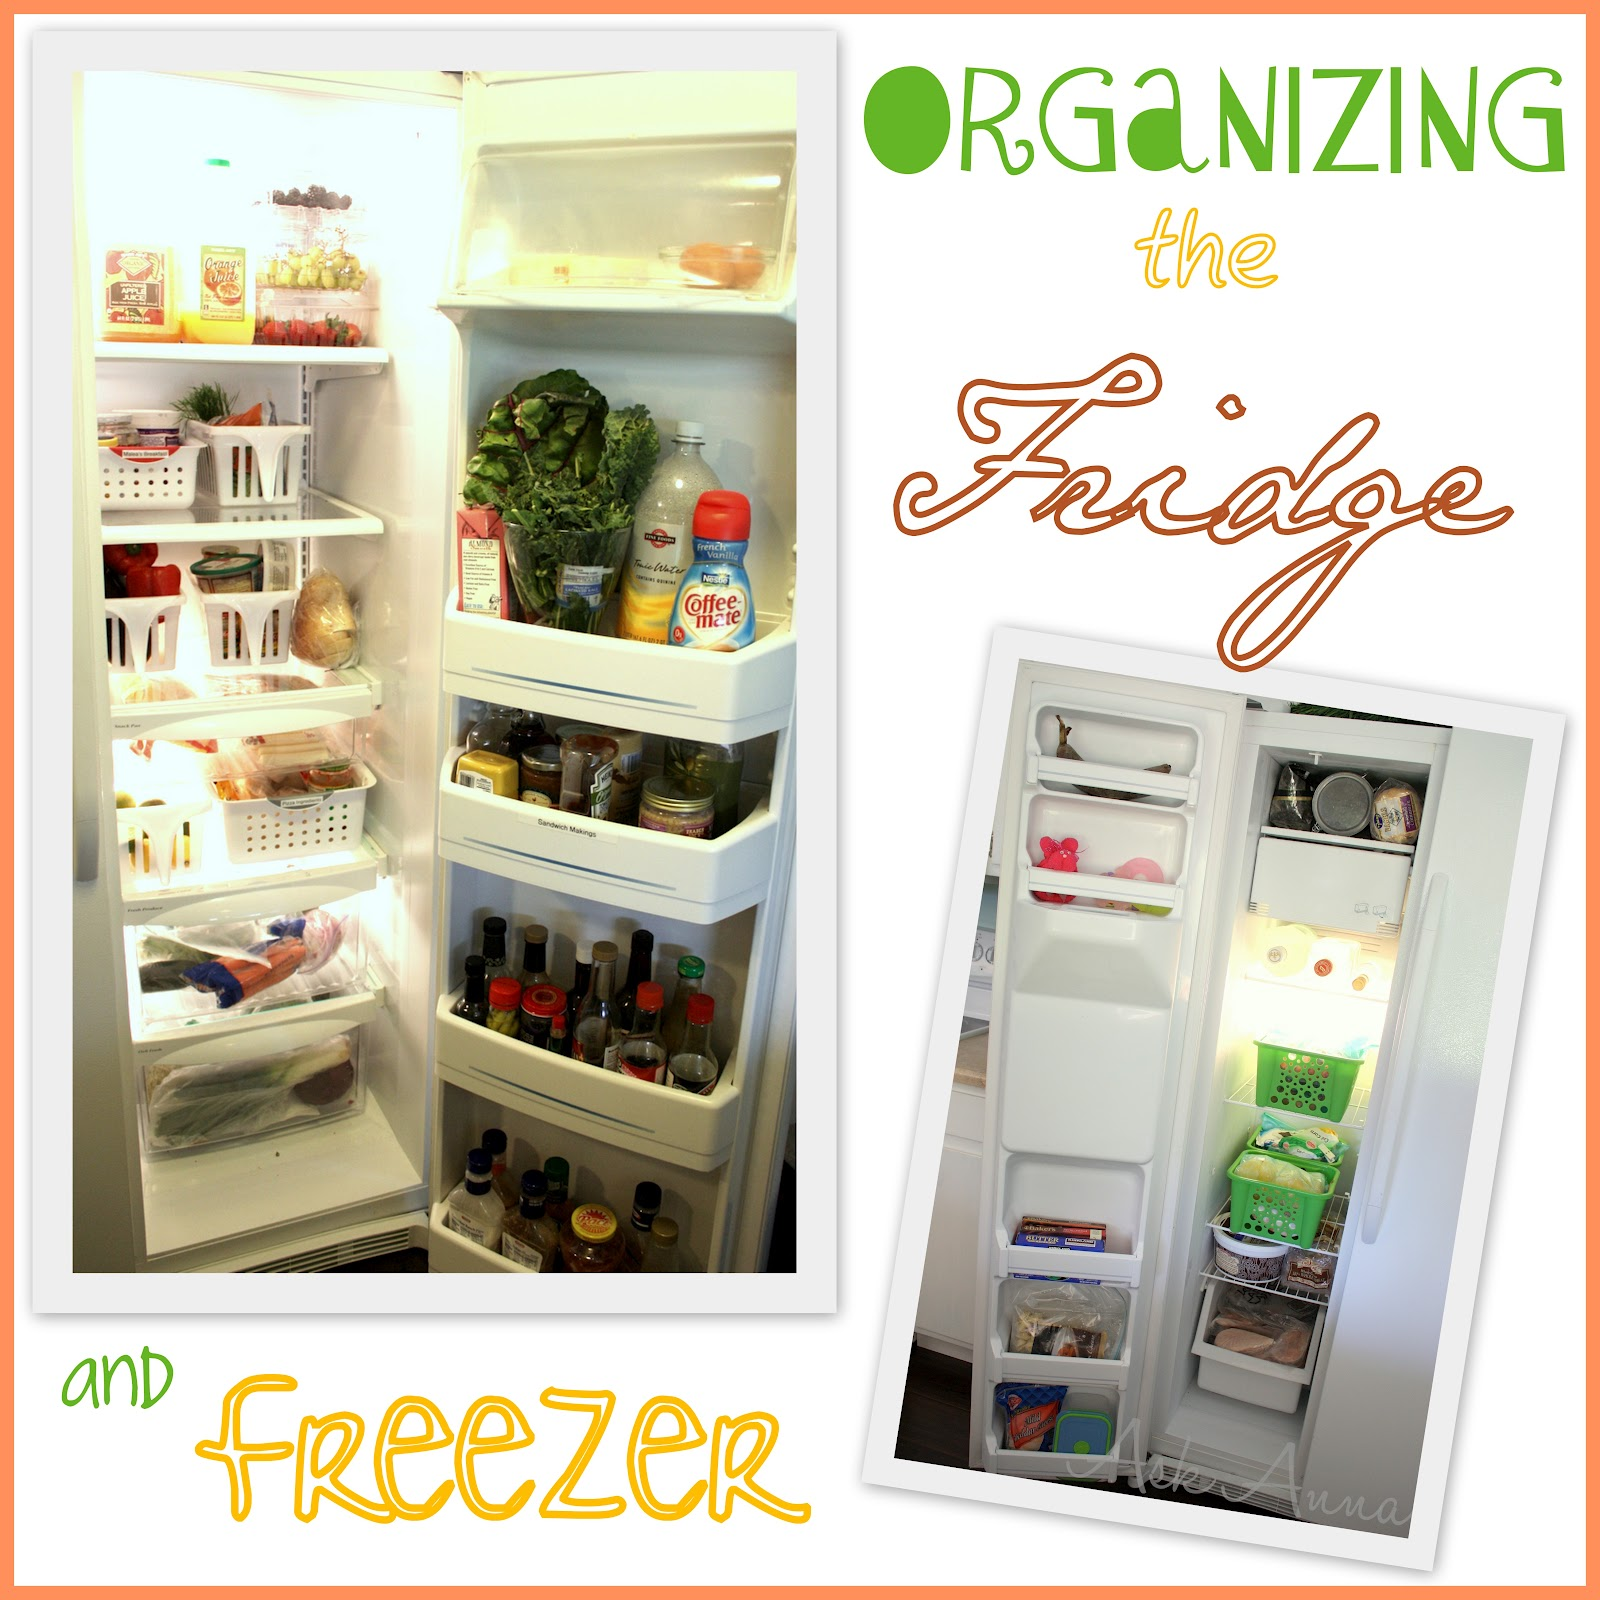 How to Clean a Refrigerator. In this Article: Article Summary Cleaning the Refrigerator Cleaning the Exterior Cleaning the Condenser Coils and Fan Blade Replacing Your Water Filter Keeping Your Refrigerator Clean and Tidy Community Q&A.